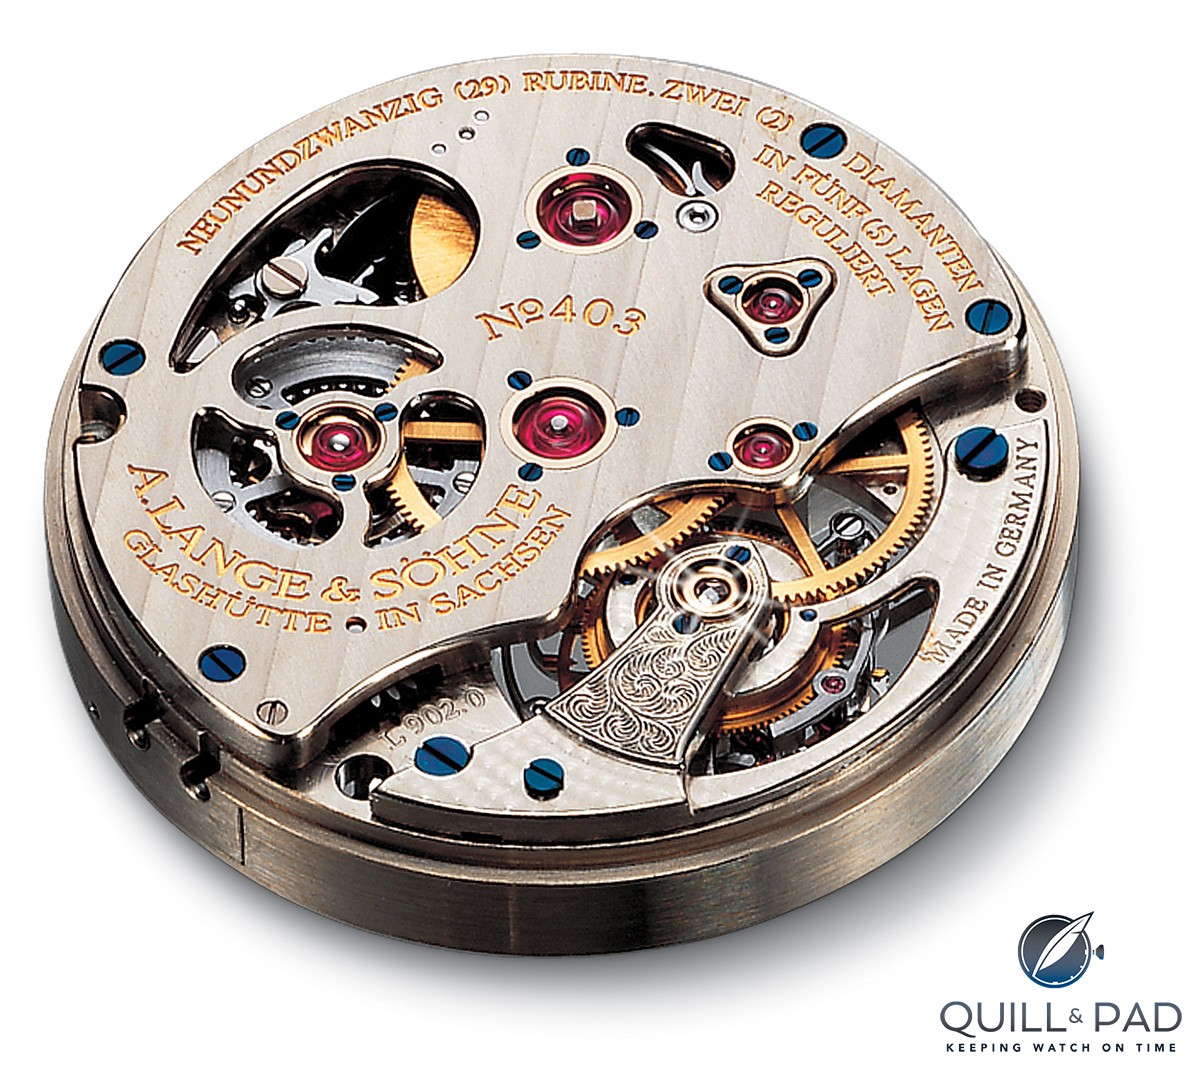 Caliber L902.0 of the A. Lange & Söhne Tourbillon Pour le Mérite